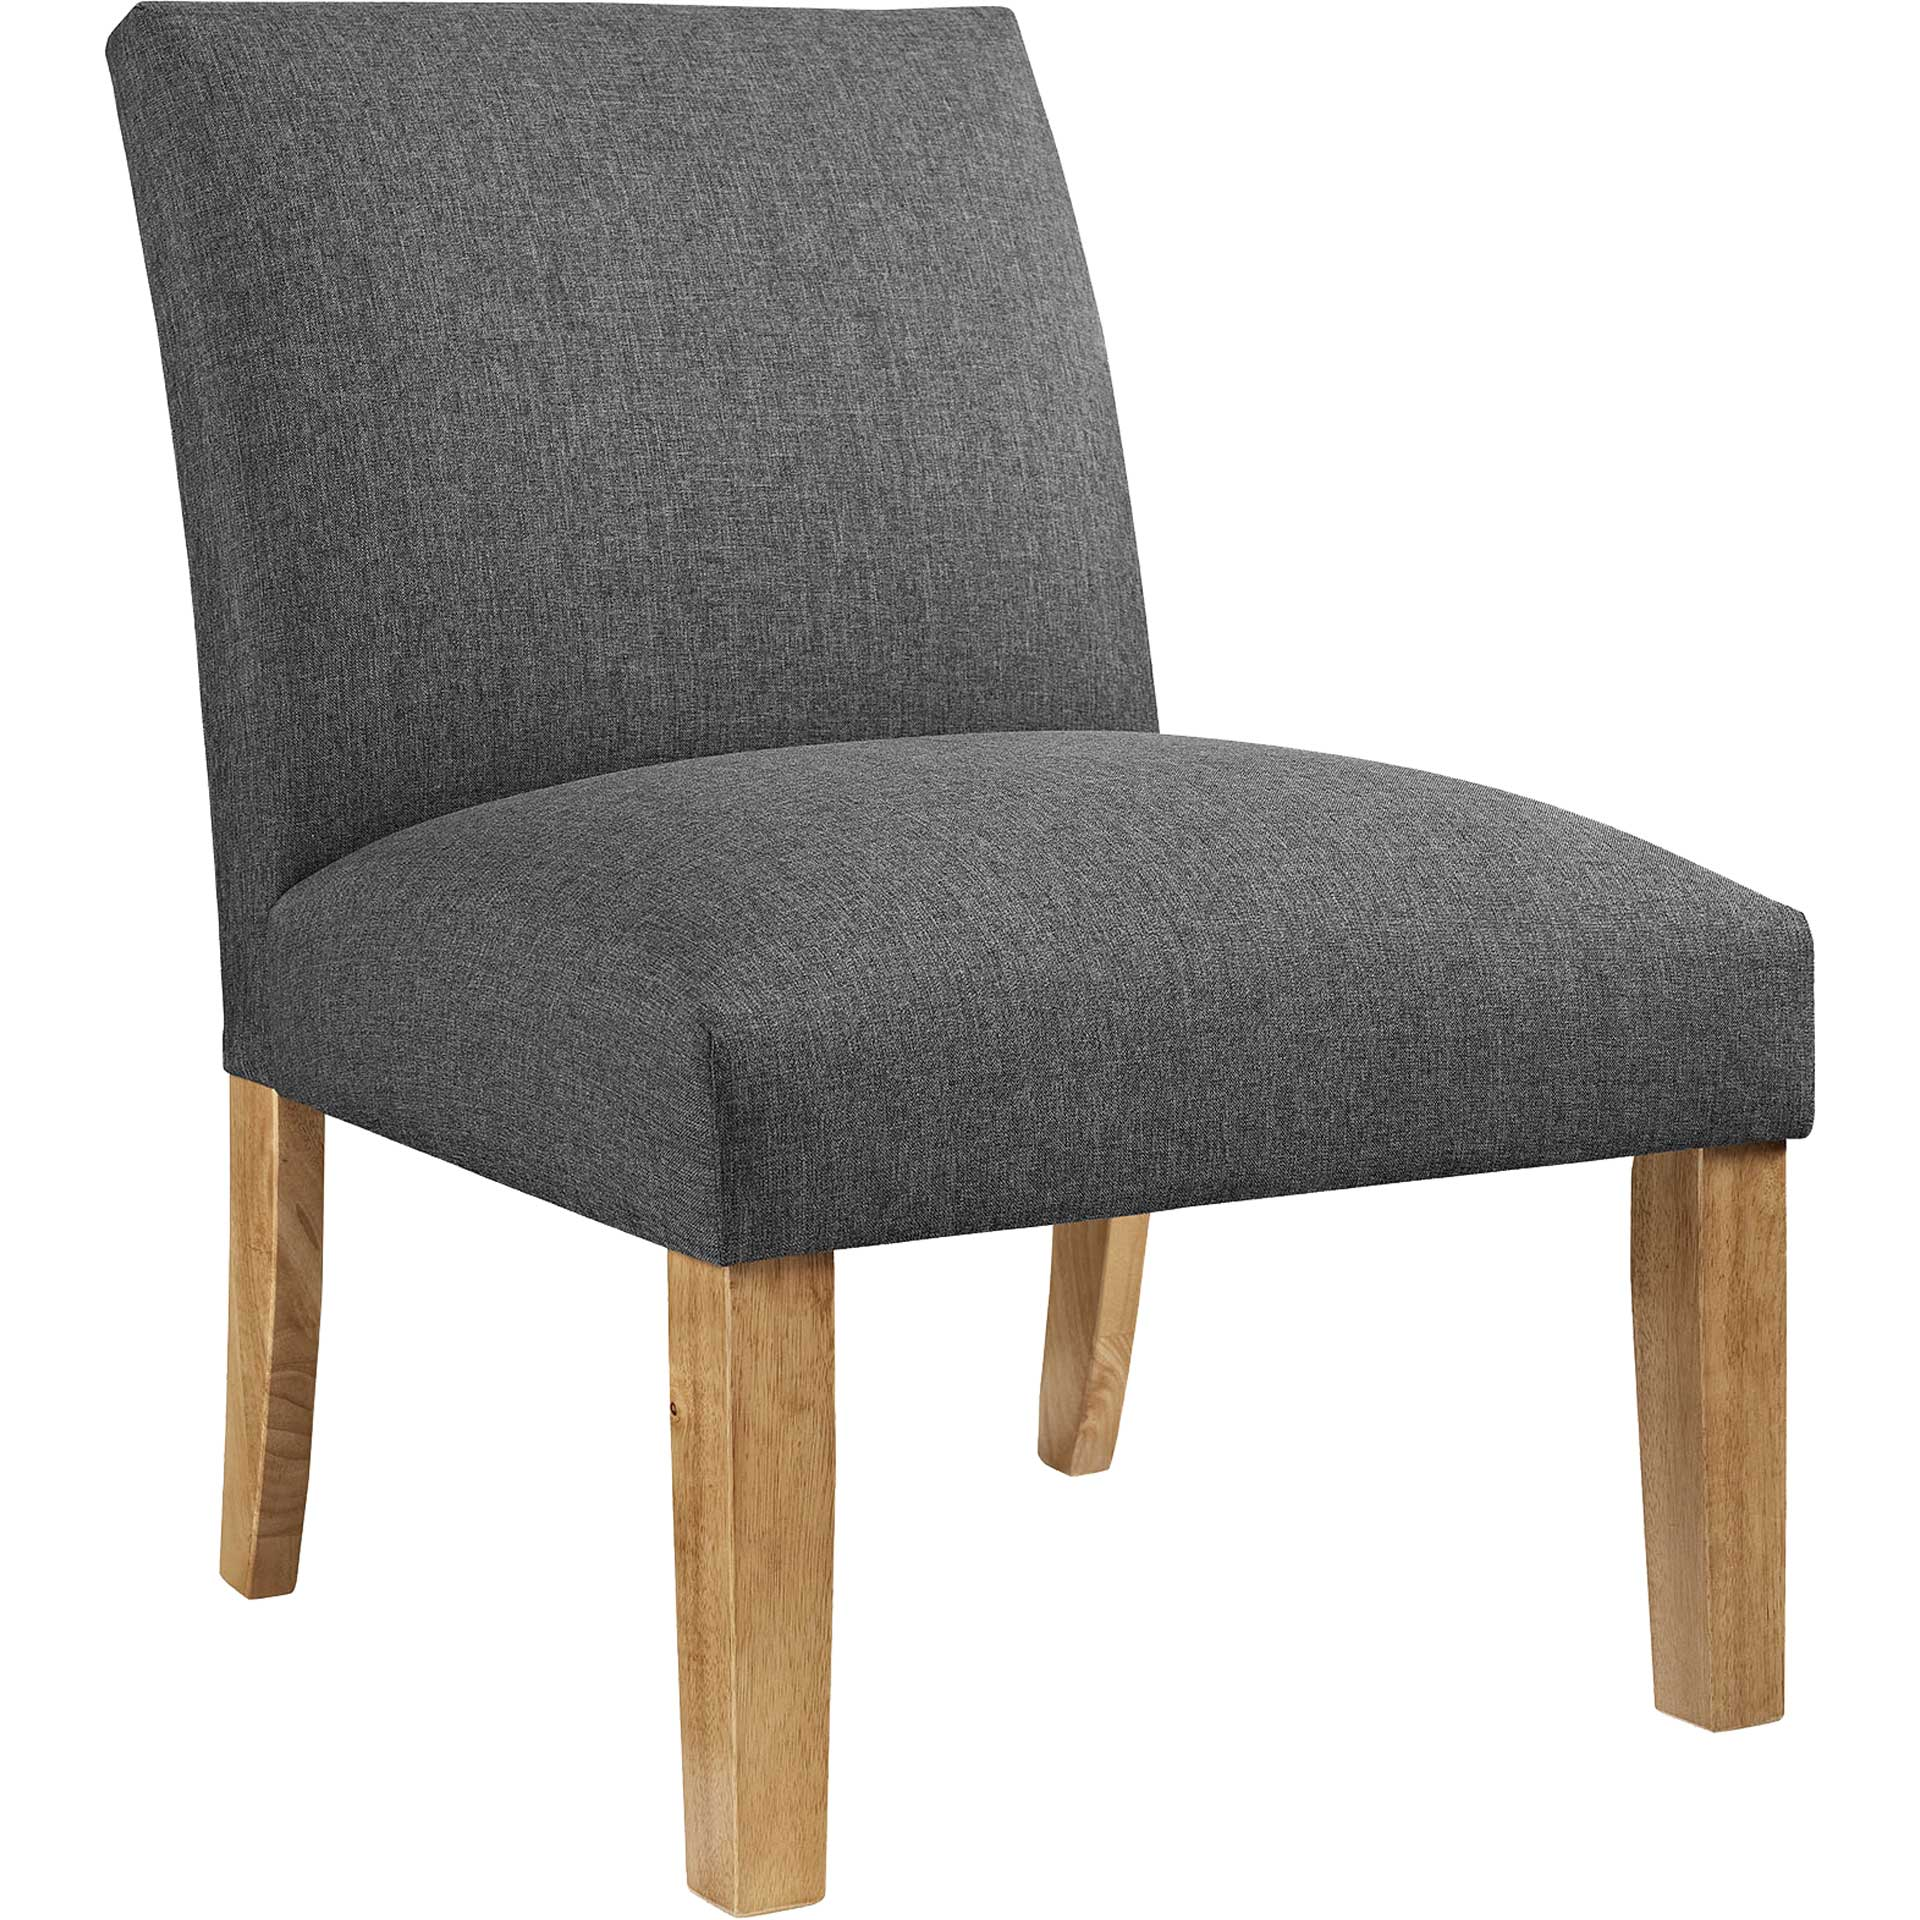 Addyson Upholstered Fabric Armchair Gray